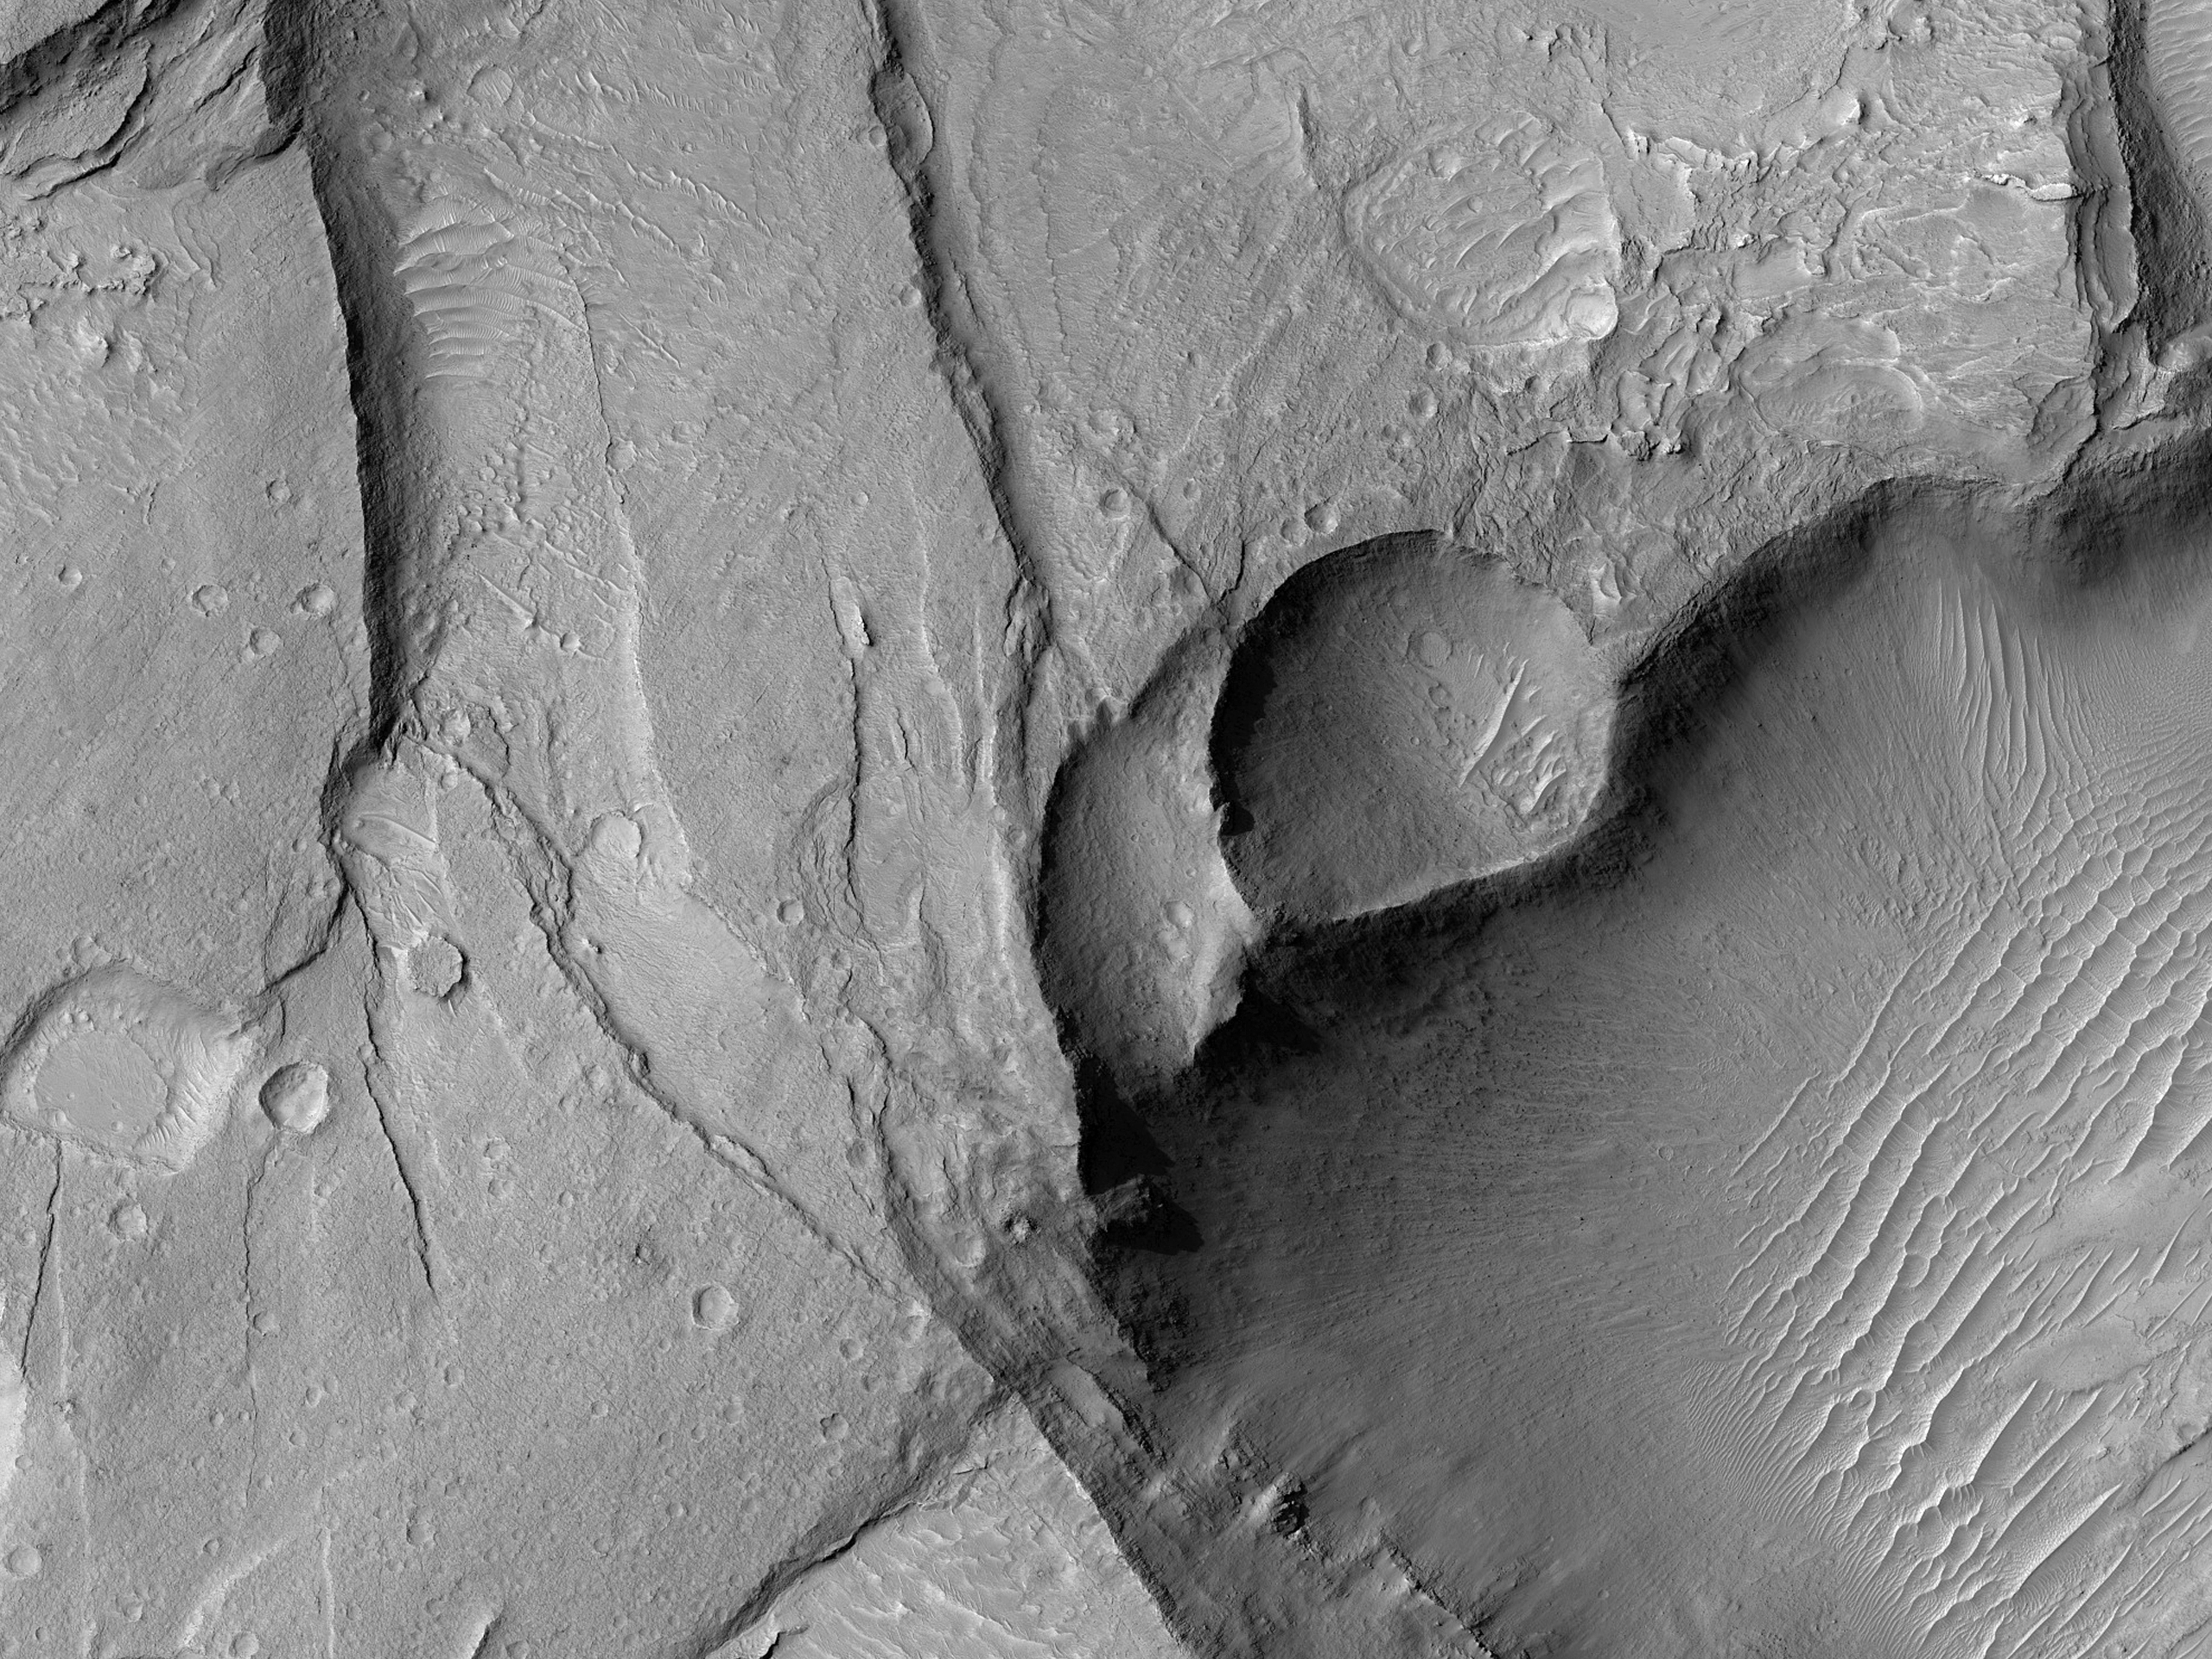 Pits and Depressions East of Juventae Chasma